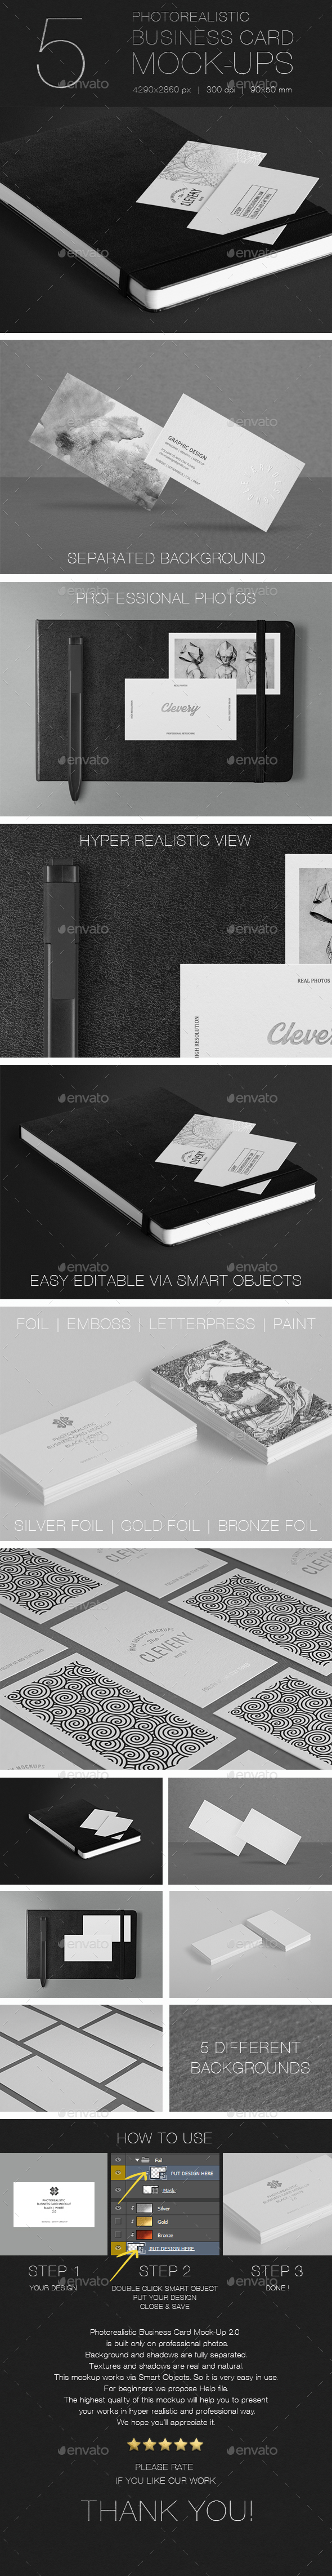 Photorealistic Business Card Mock-Up 2.0 - Business Cards Print